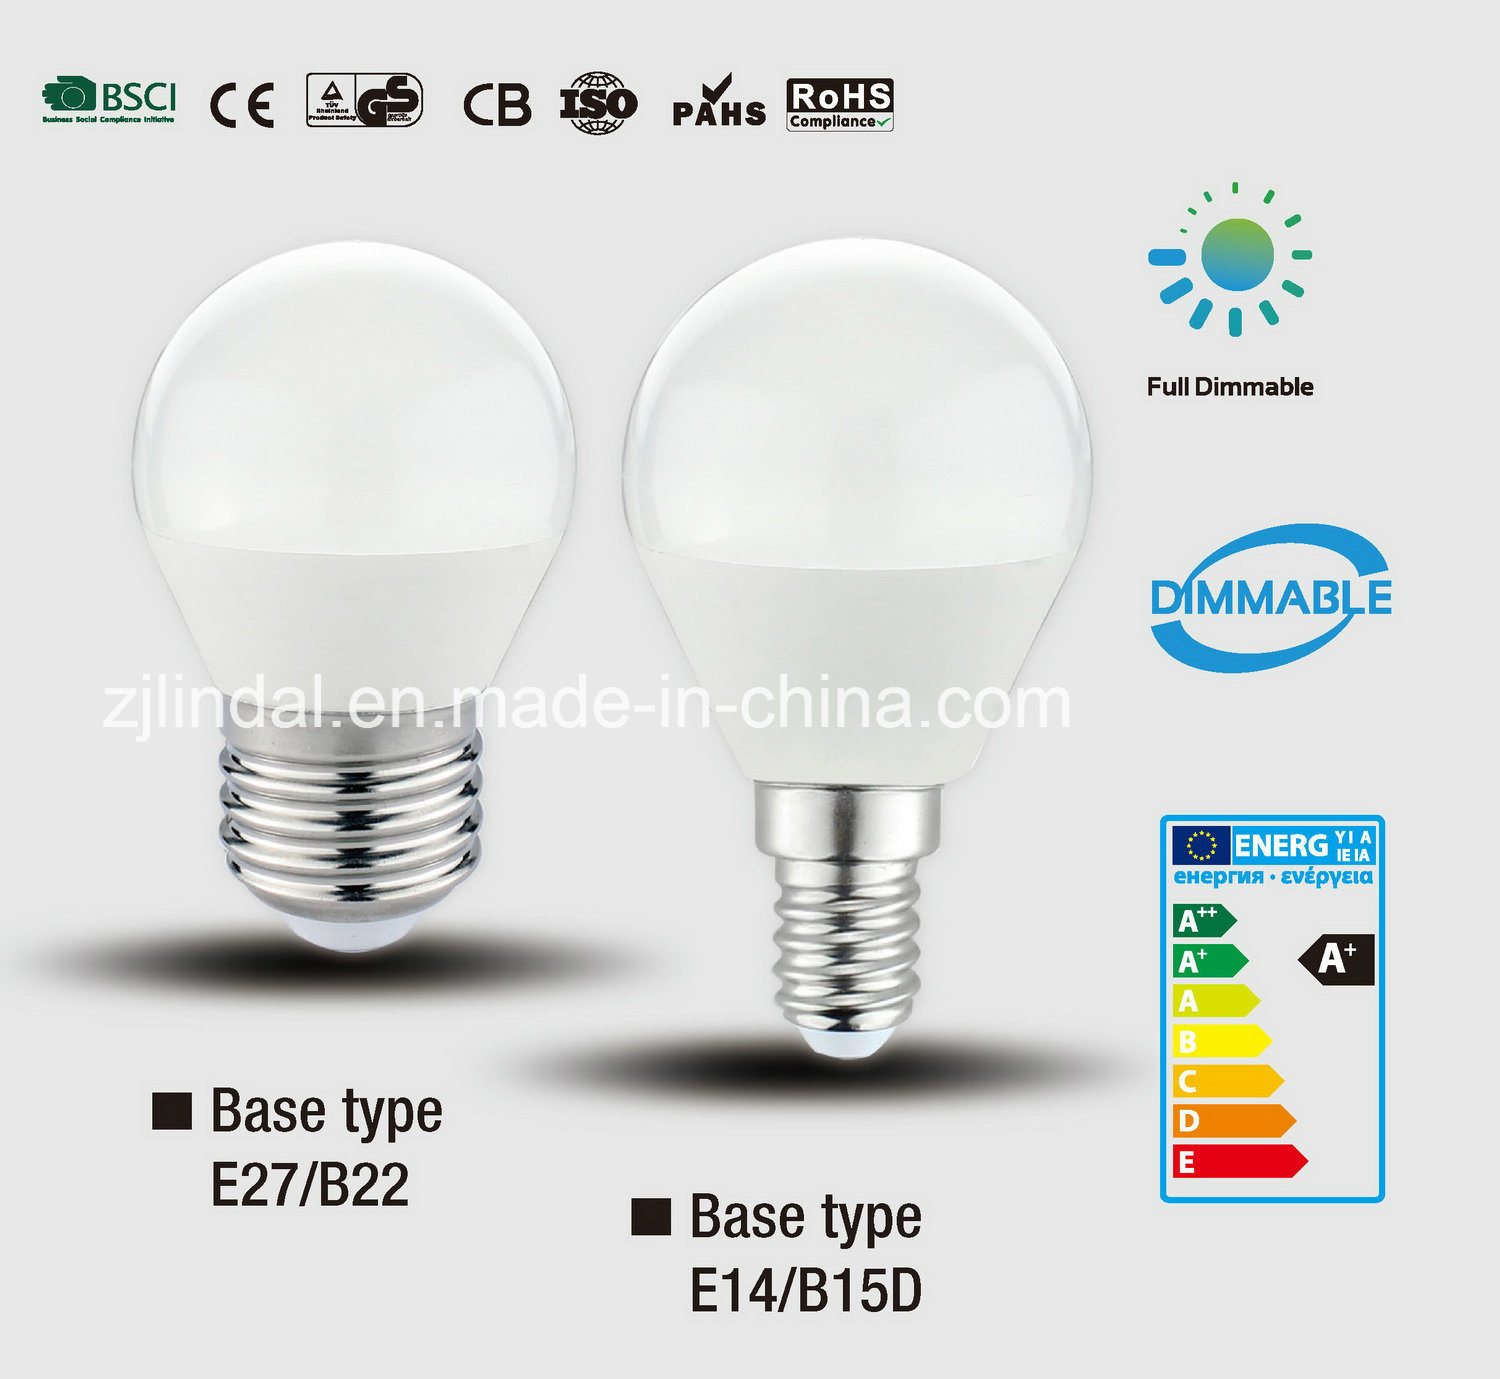 Dimmable LED Bulb G45-Sbl